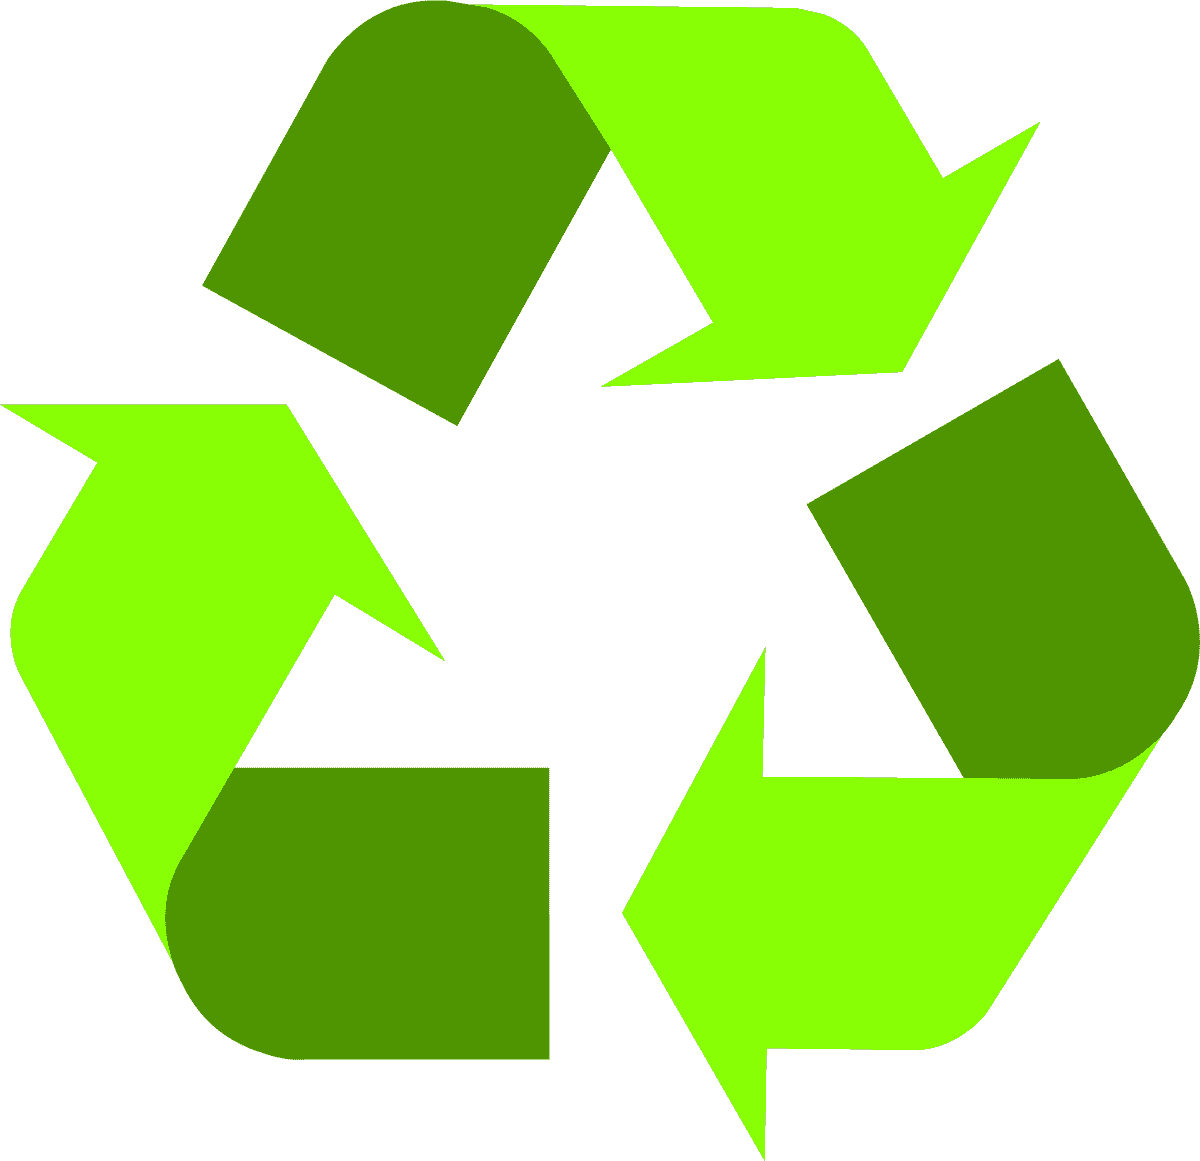 Recycling Symbol - Download the Original Recycle Logo